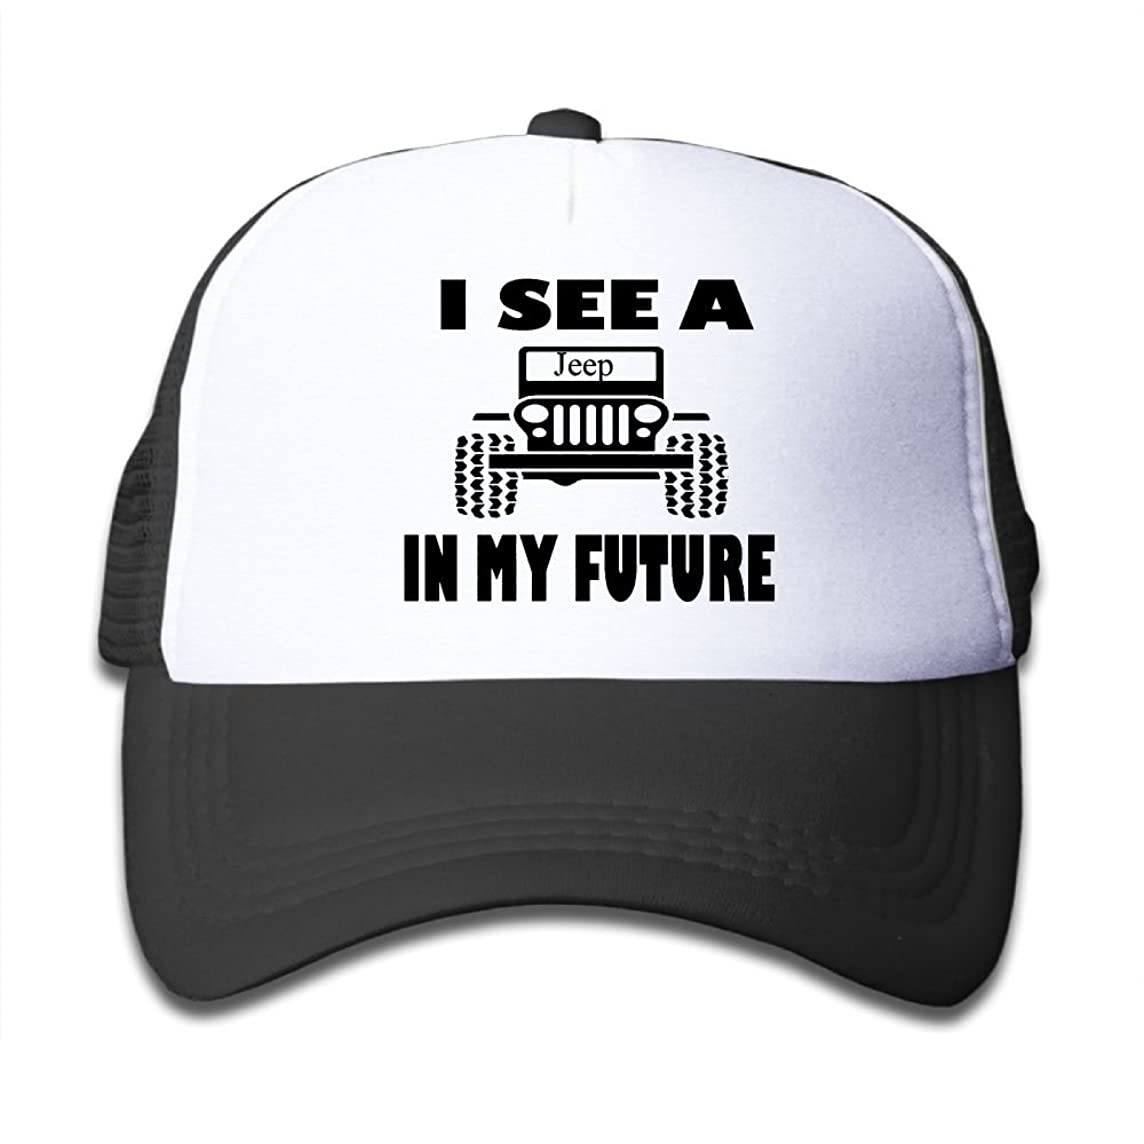 I See A Jeep In My Future Mesh Hat Trucker Style Outdoor Sports Baseball Cap With Adjustable Snapback Strap For Kid's Pink